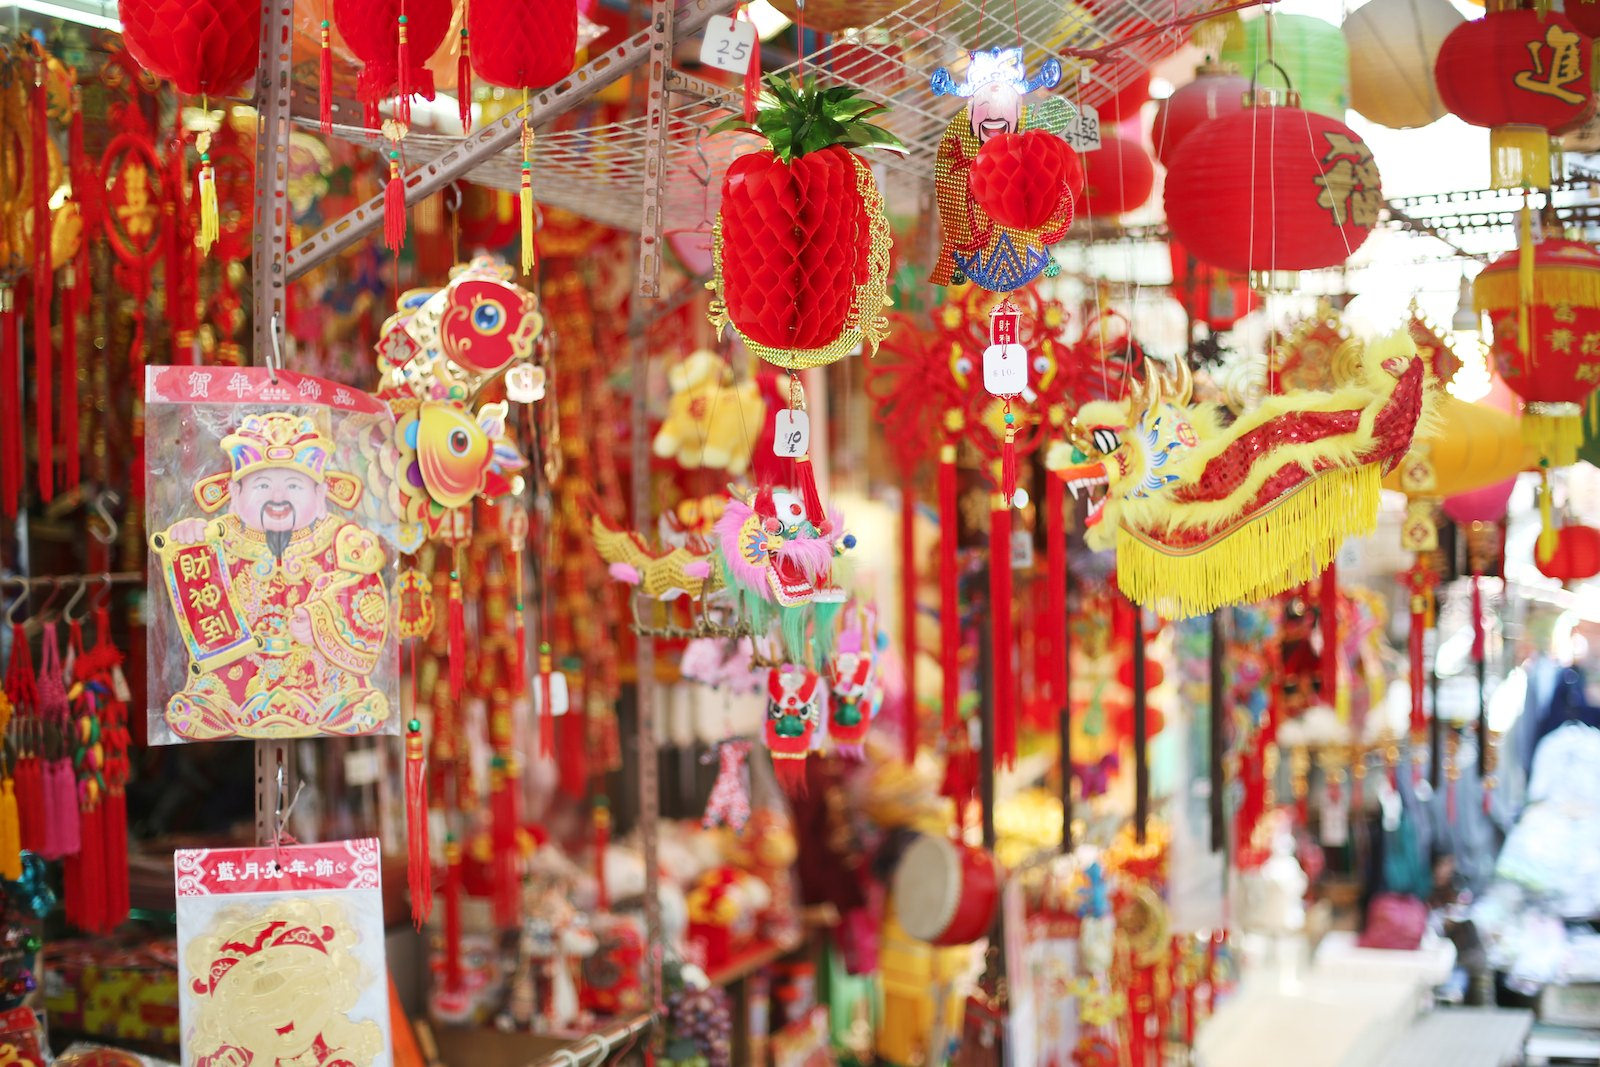 Chinese New Year decorations | © Geneva Vanderzeil/Flickr